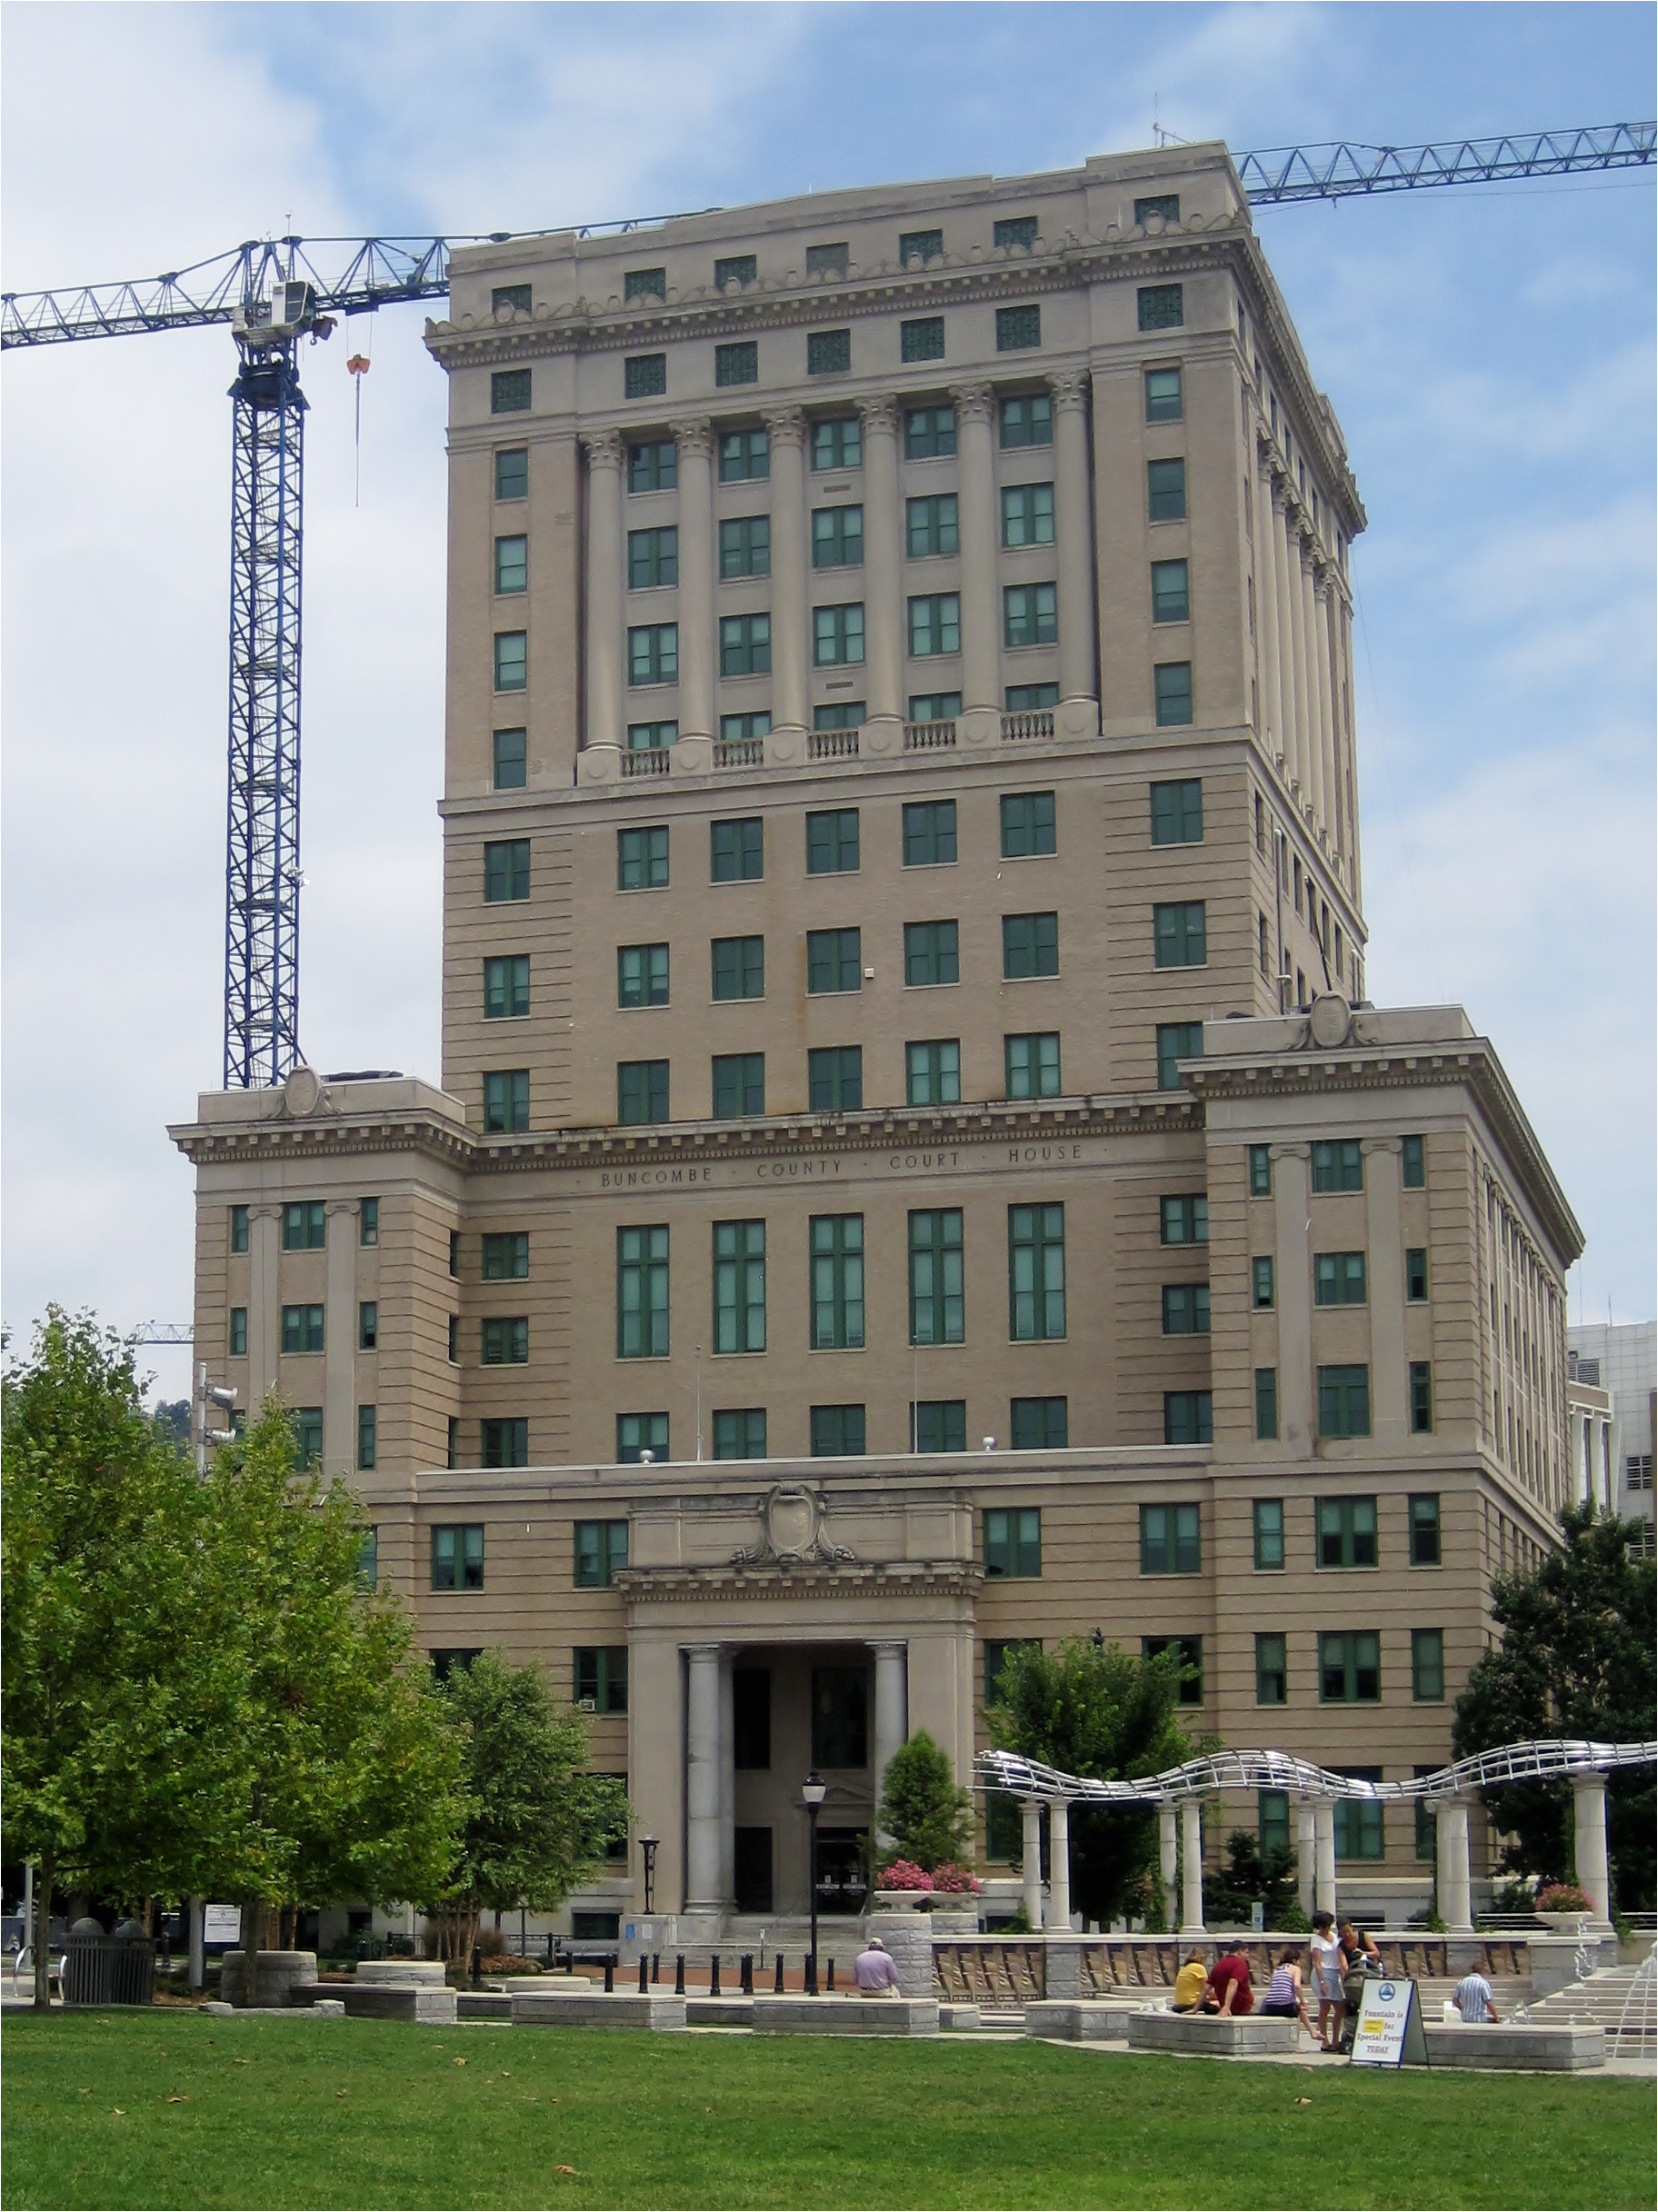 buncombe county courthouse jpg